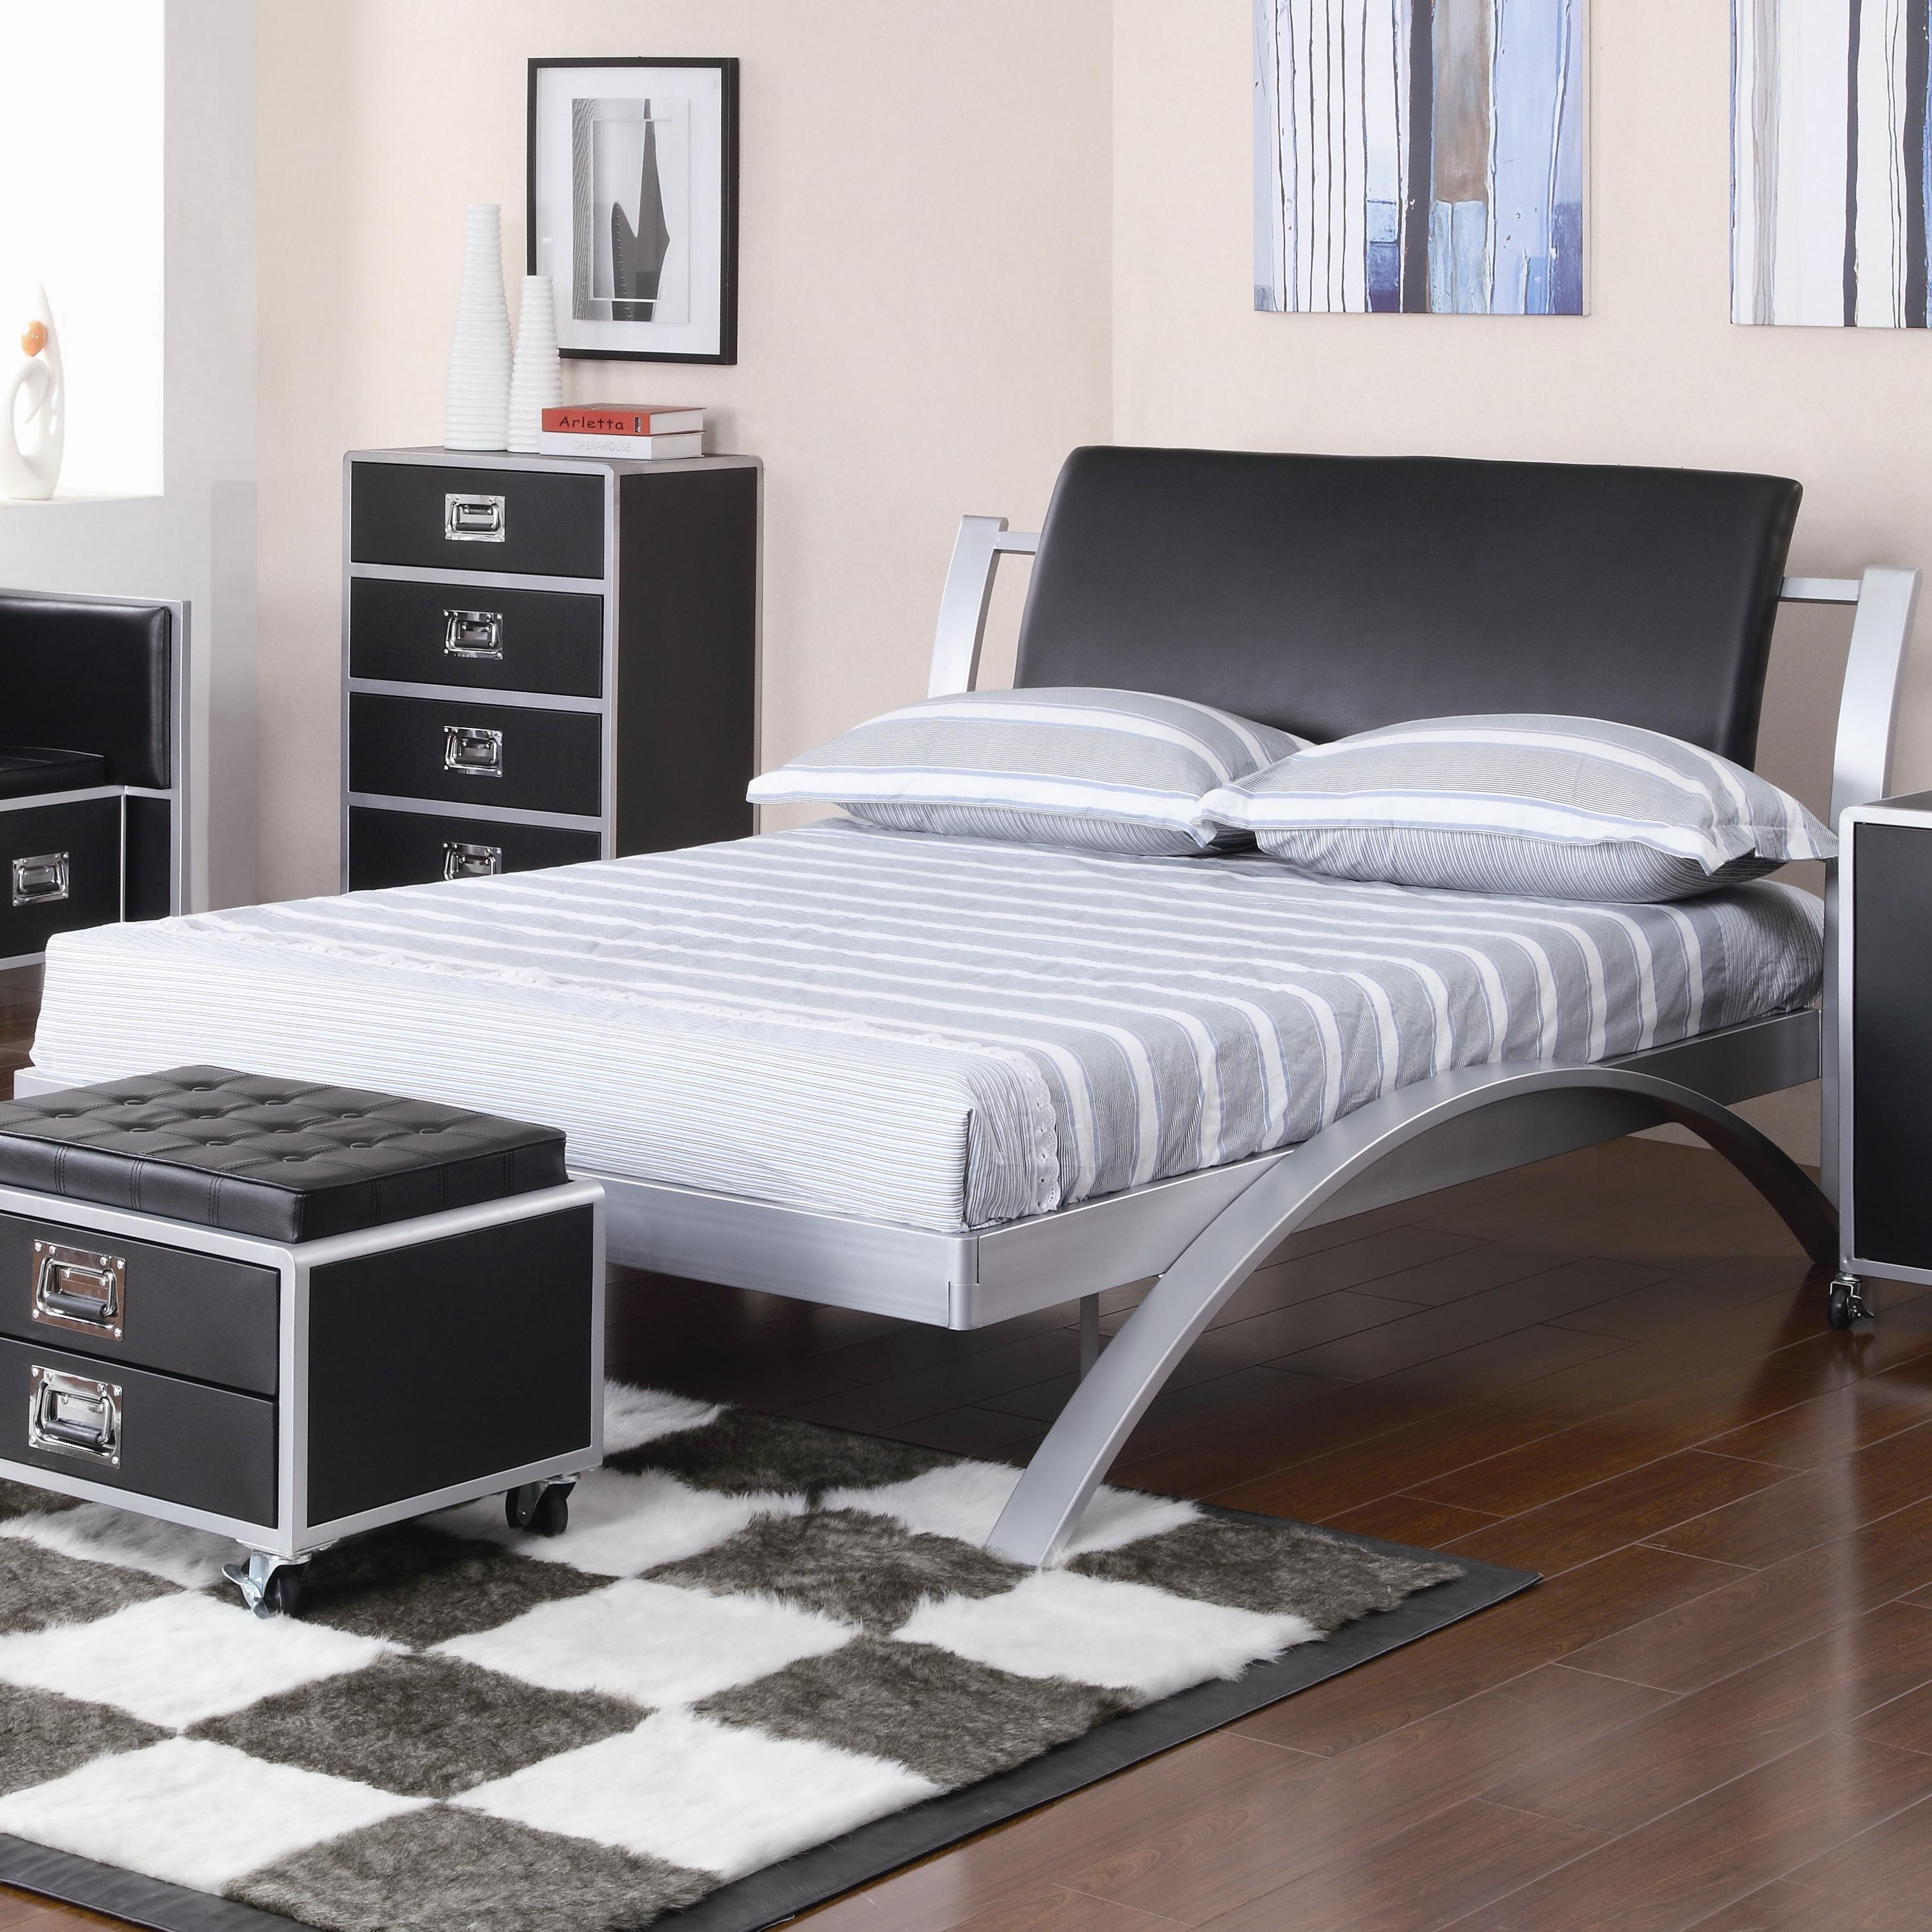 Coaster Leclair 300200t Twin Metal Platform Bed Northeast Factory Direct Platform Beds Low Profile Beds